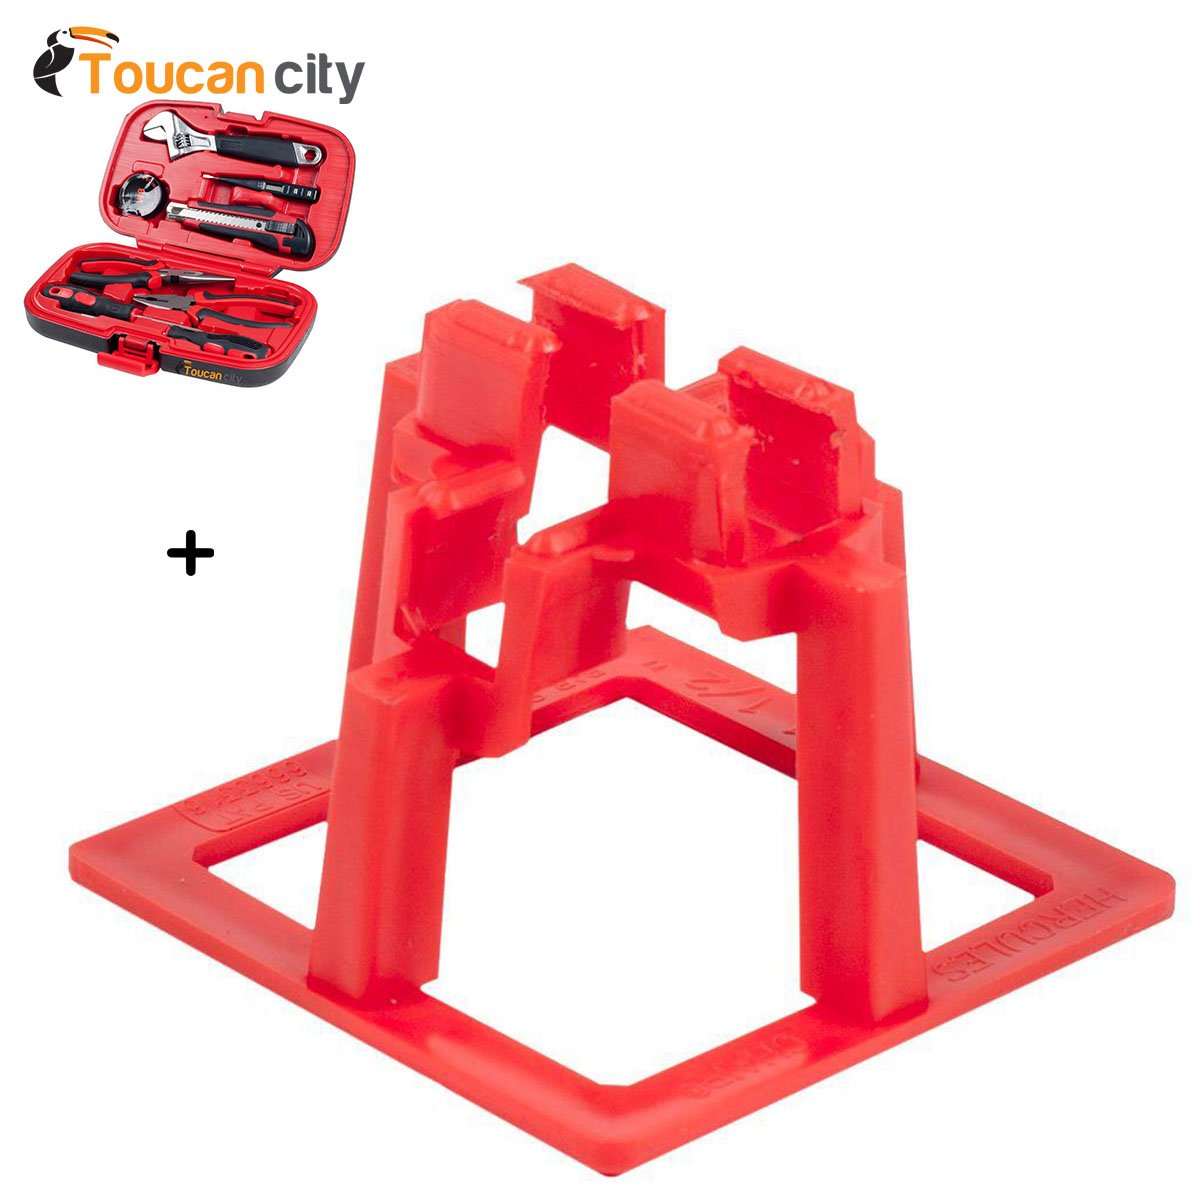 Toucan City Tool Kit (9-Piece) and Hercules 1-1/2 in. Rebar Chair (50-Pack) 911